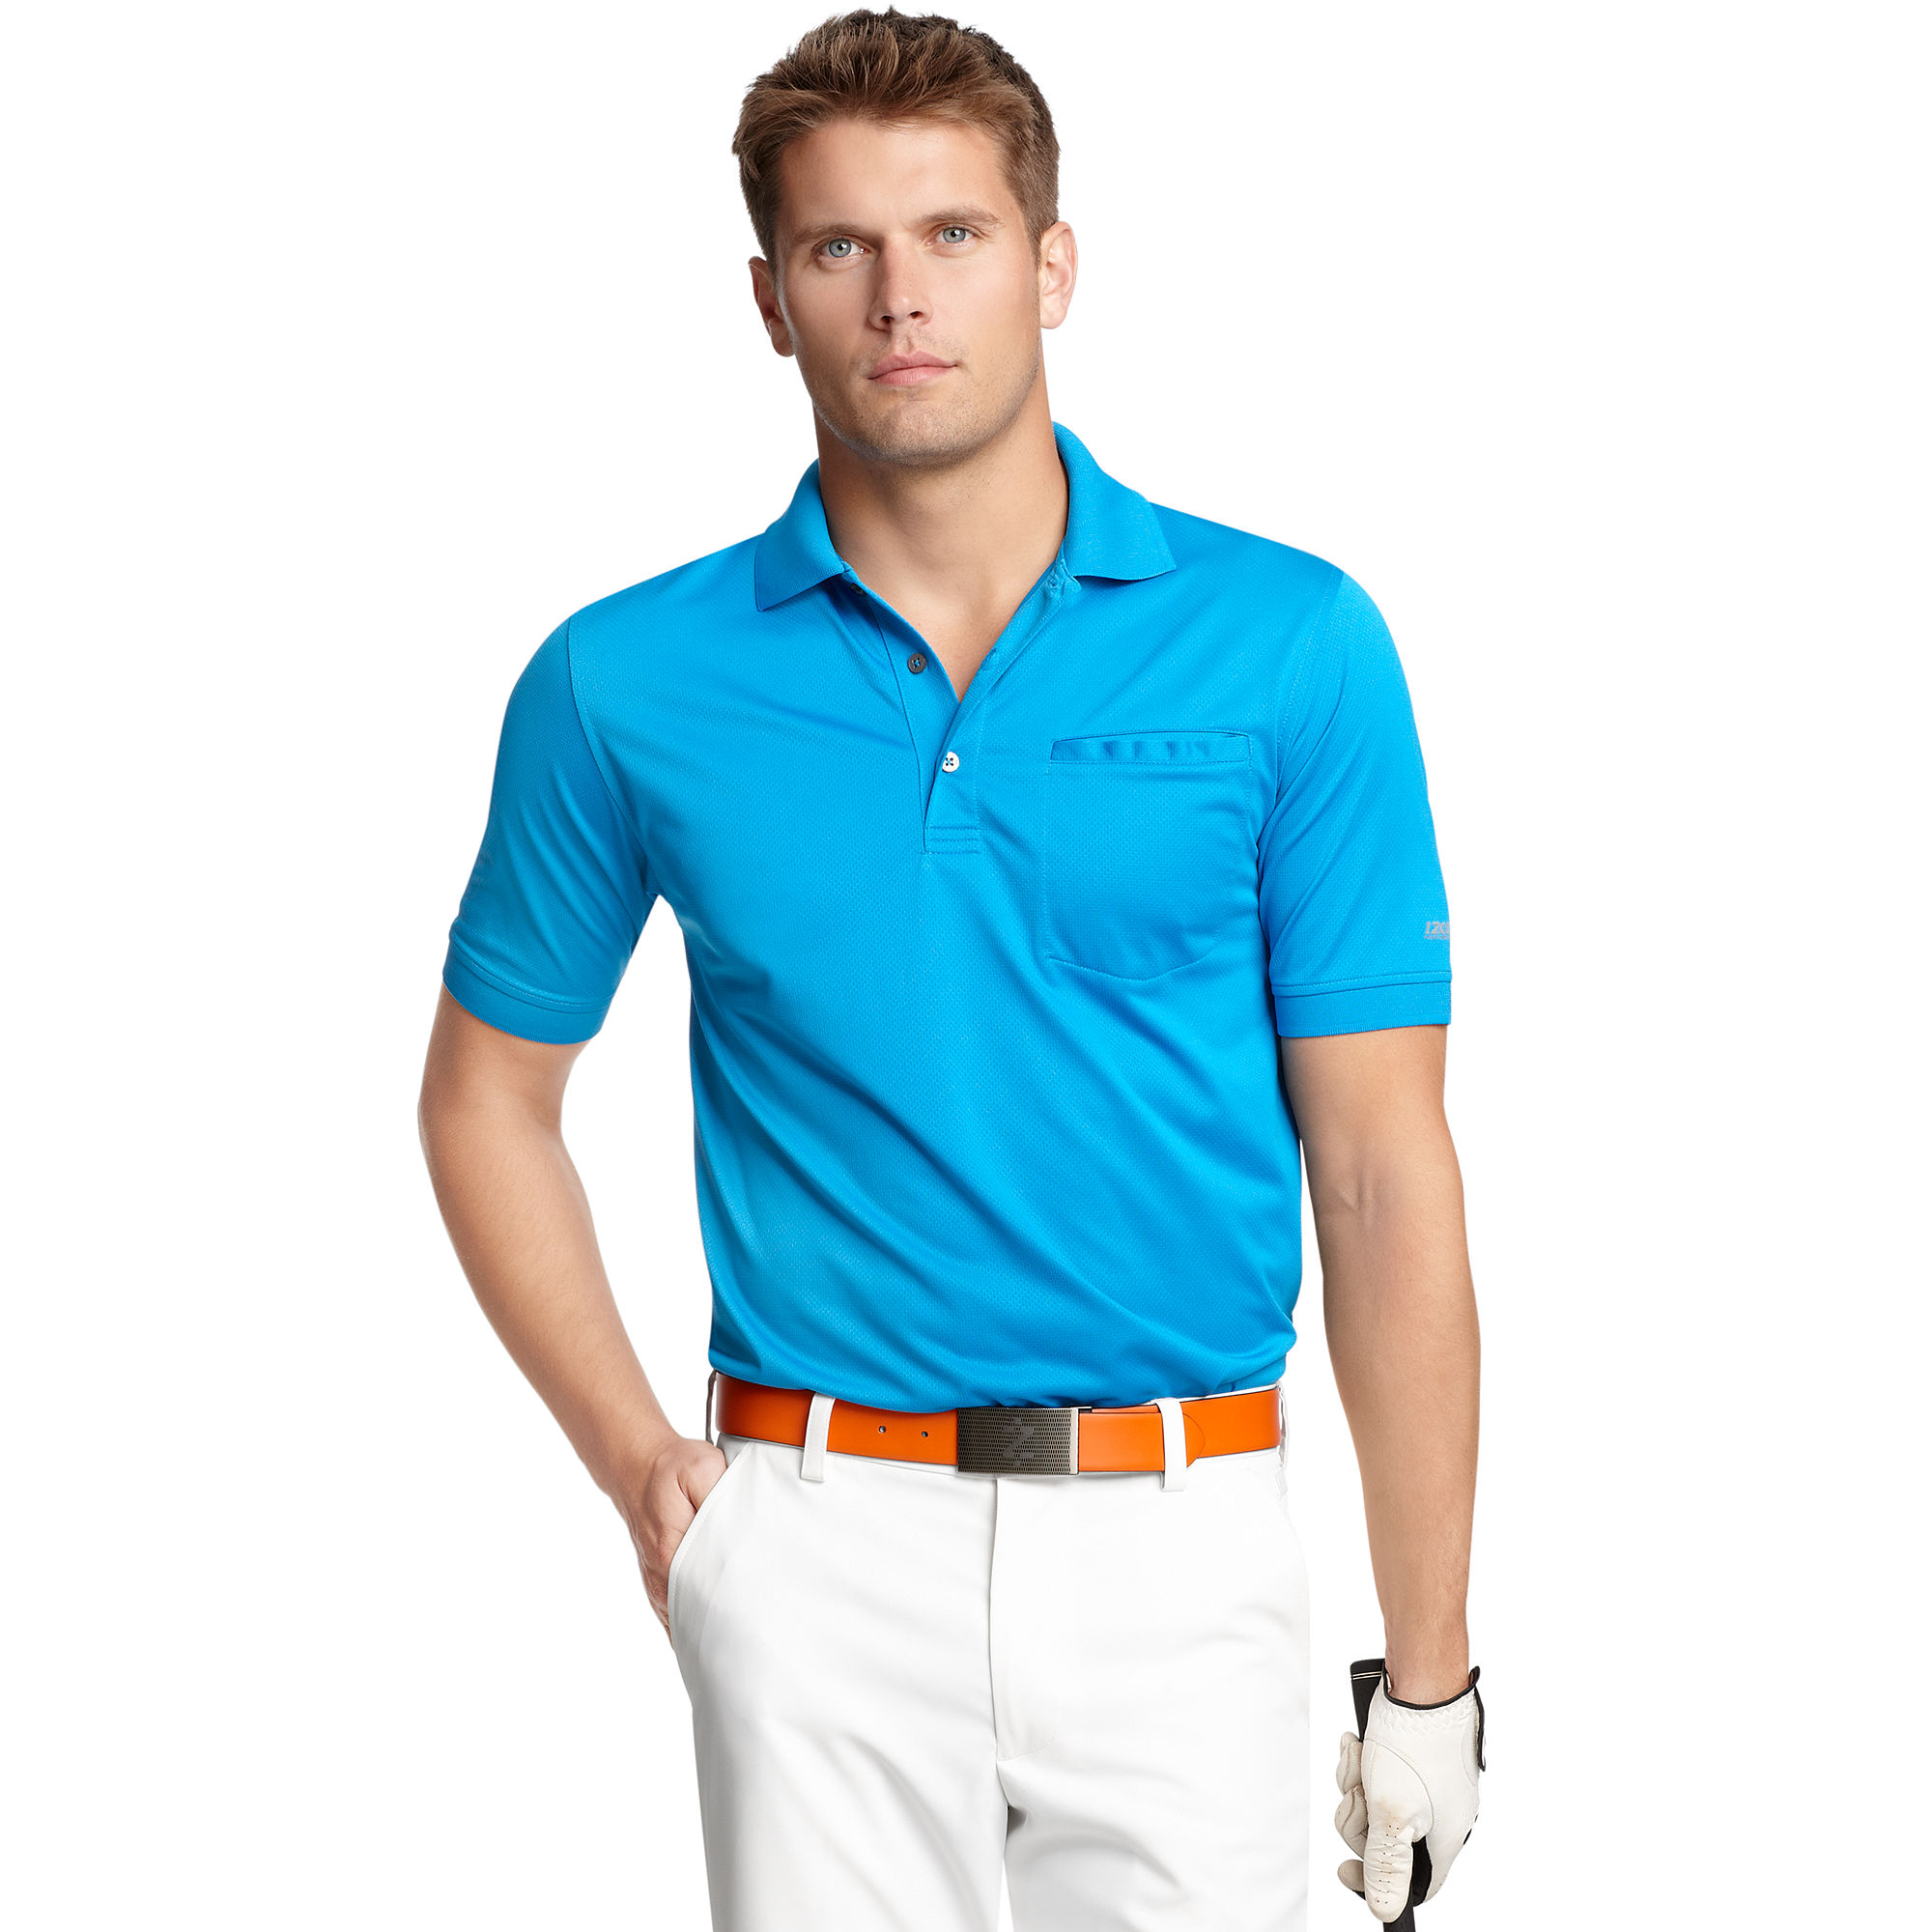 Images Of Golf Shirts With Pockets For Men Best Fashion